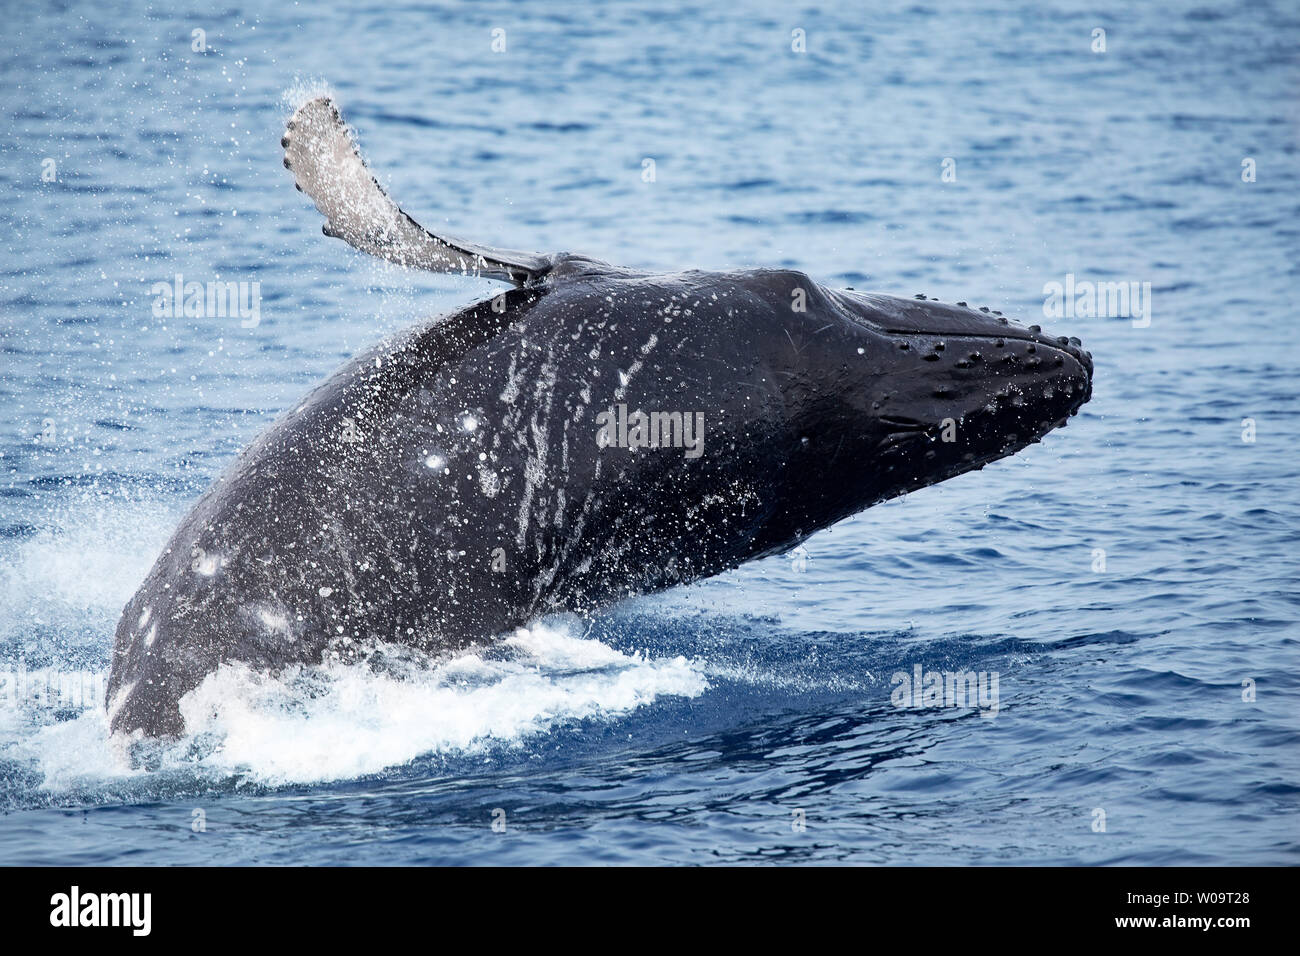 This breaching humpback whale, Megaptera novaeangliae, may be trying to comunicate with other whales nearby, Hawaii. - Stock Image